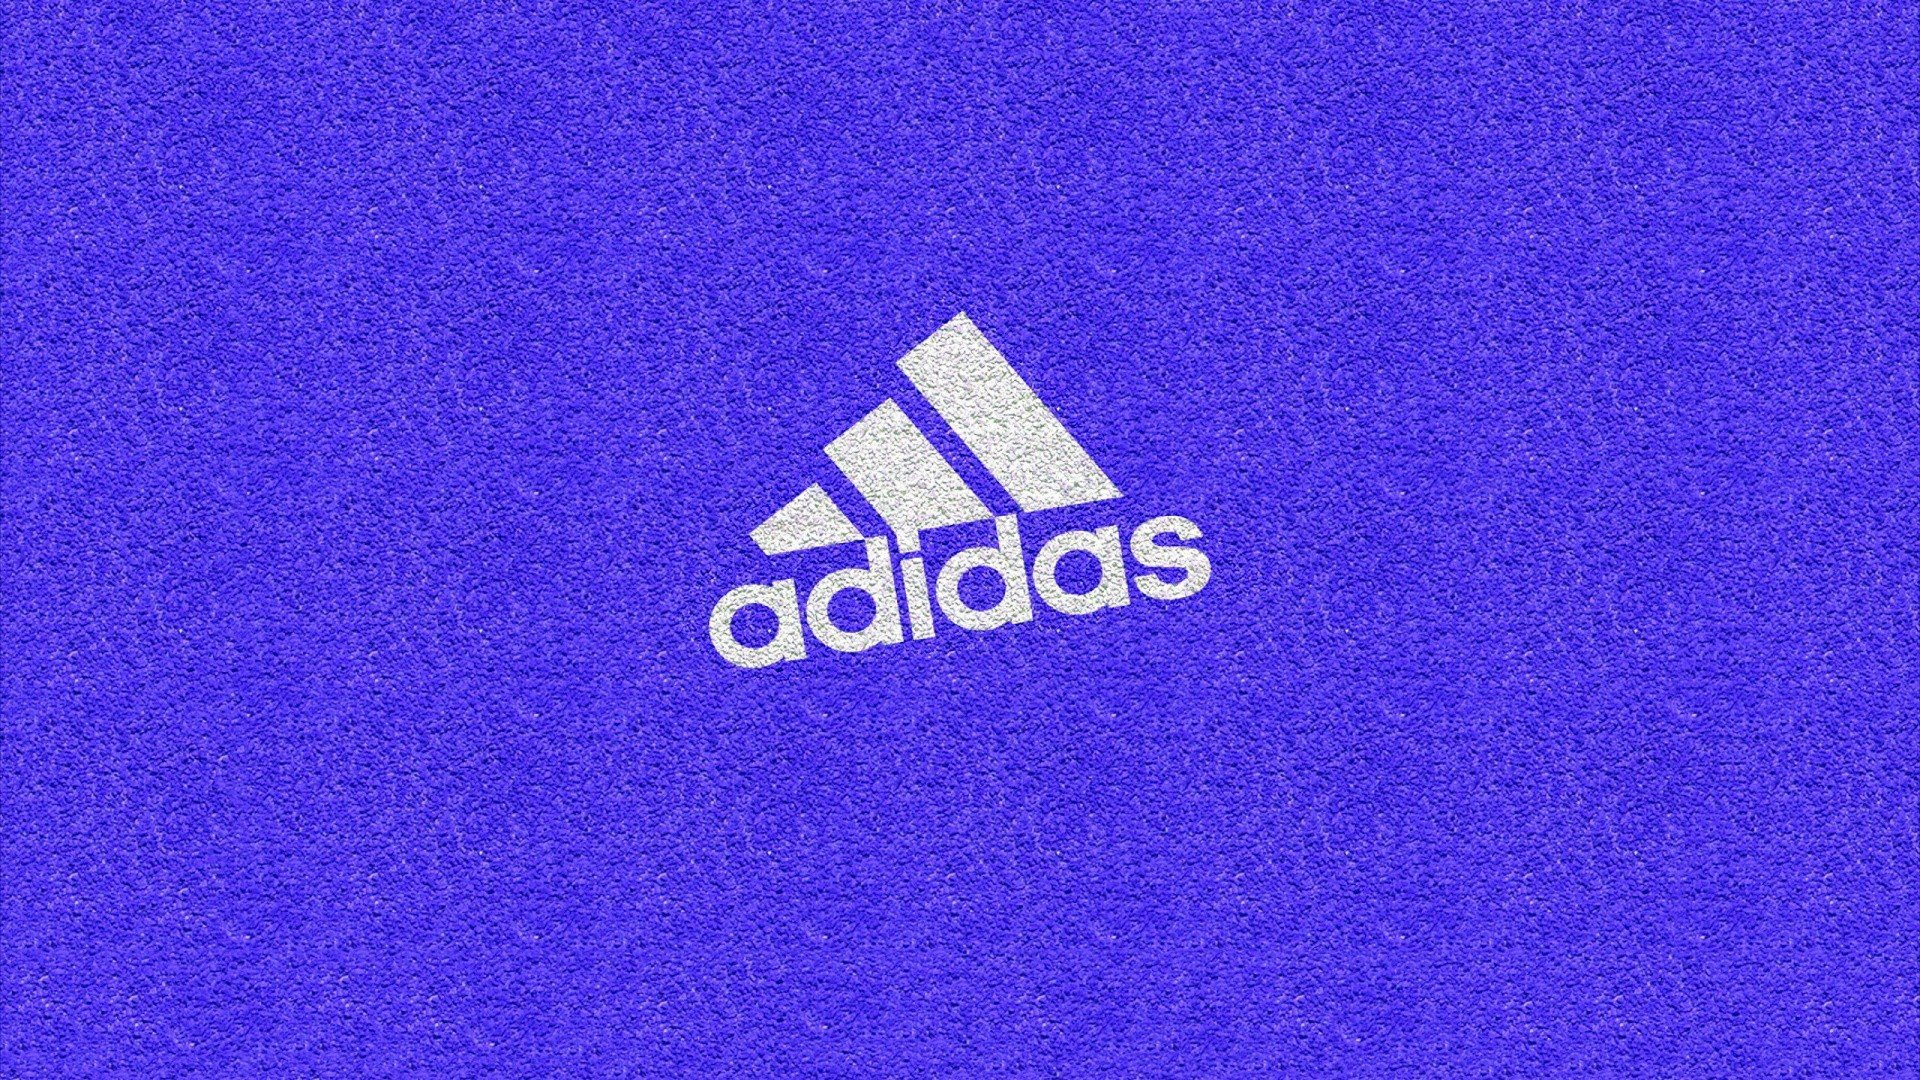 Download full hd 1080p Adidas computer background ID:59630 for free